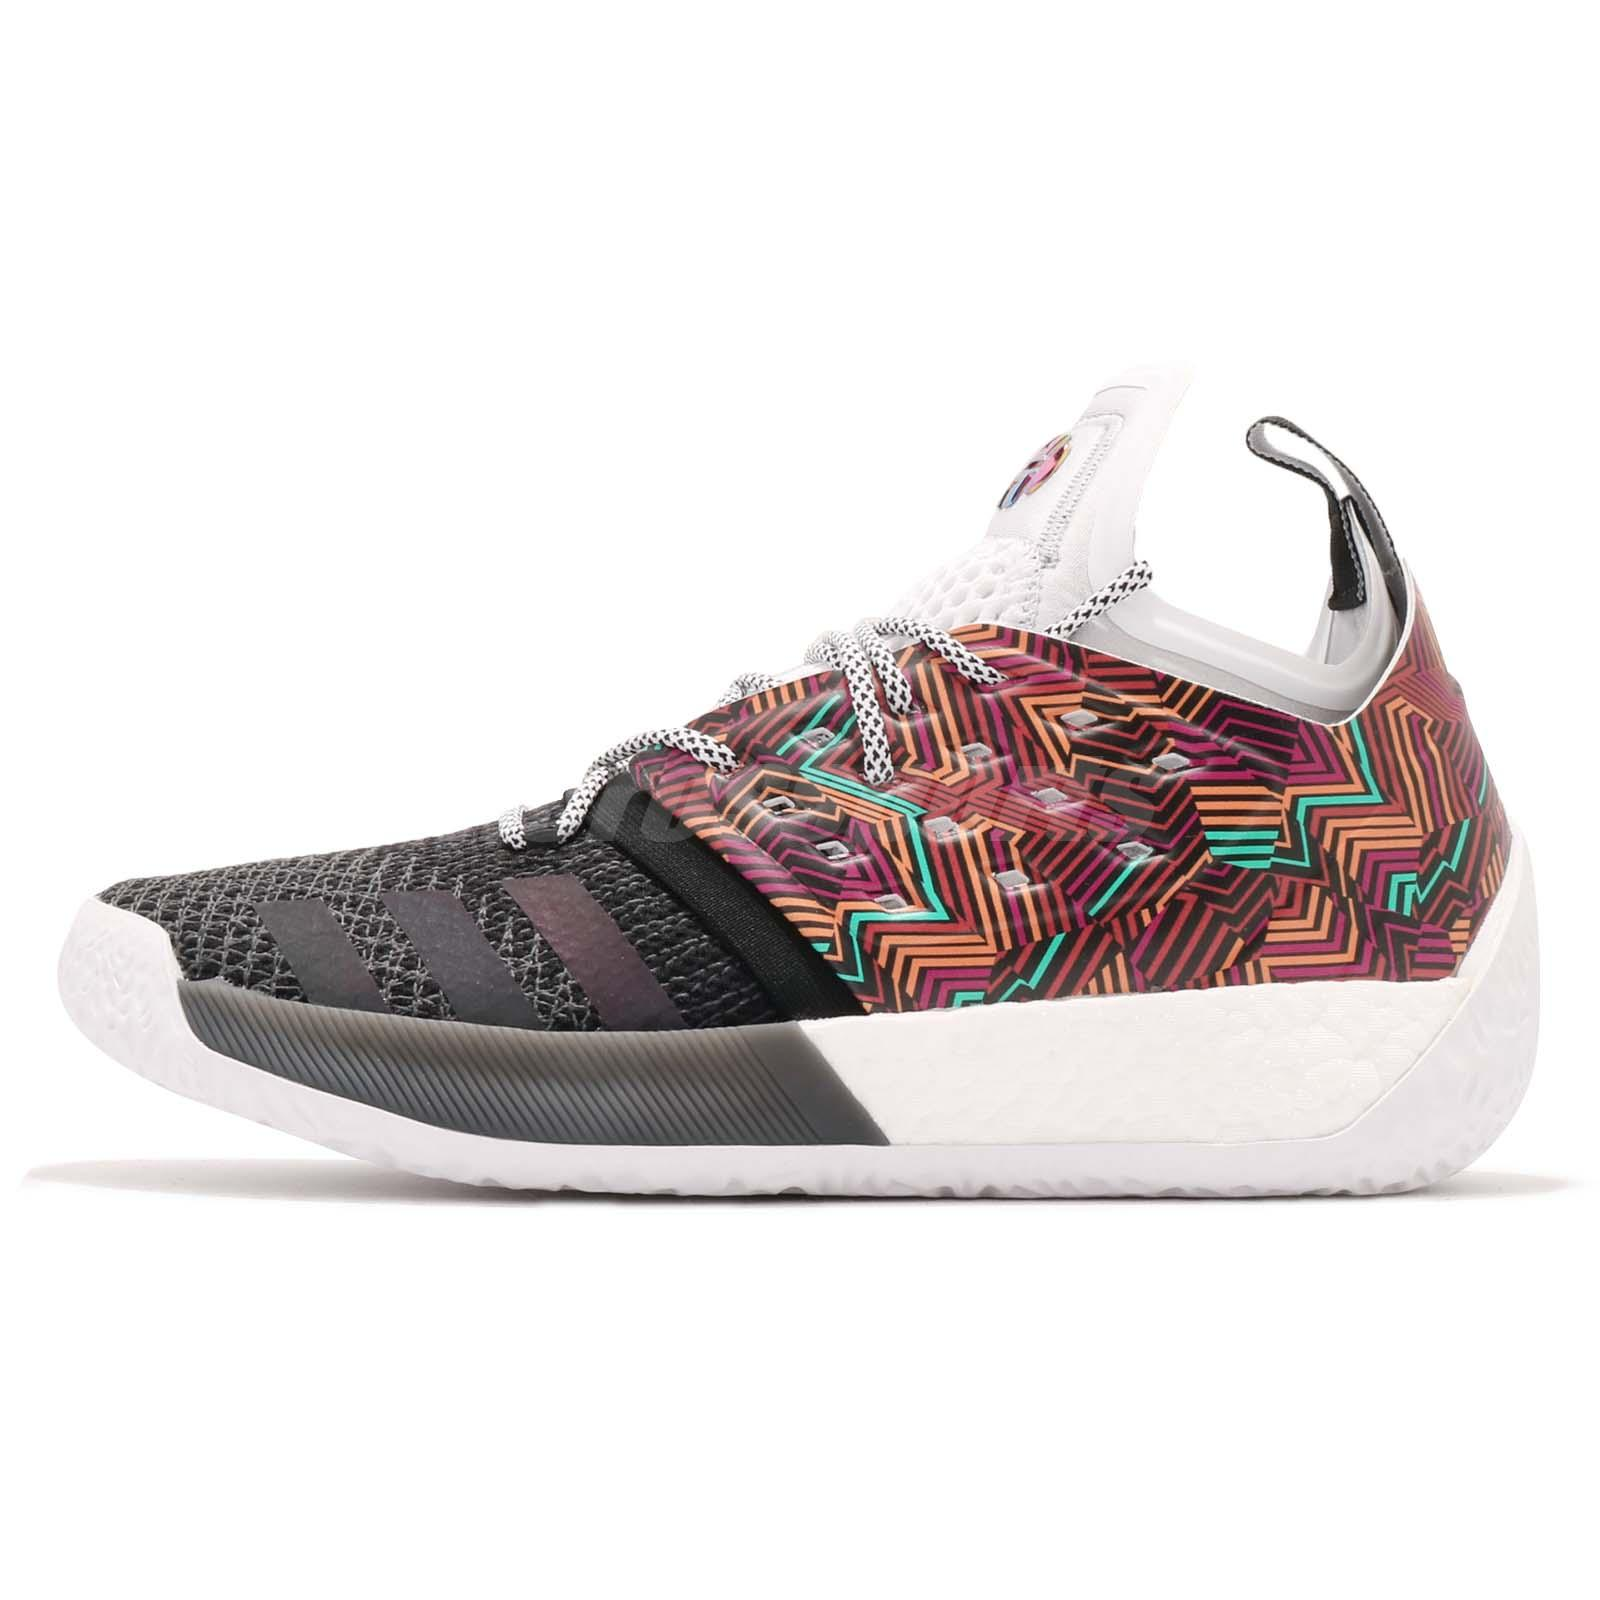 44a448007511 adidas Harden Vol. 2 II James Summer Pack Boost Multi Color Men Shoes AQ0048